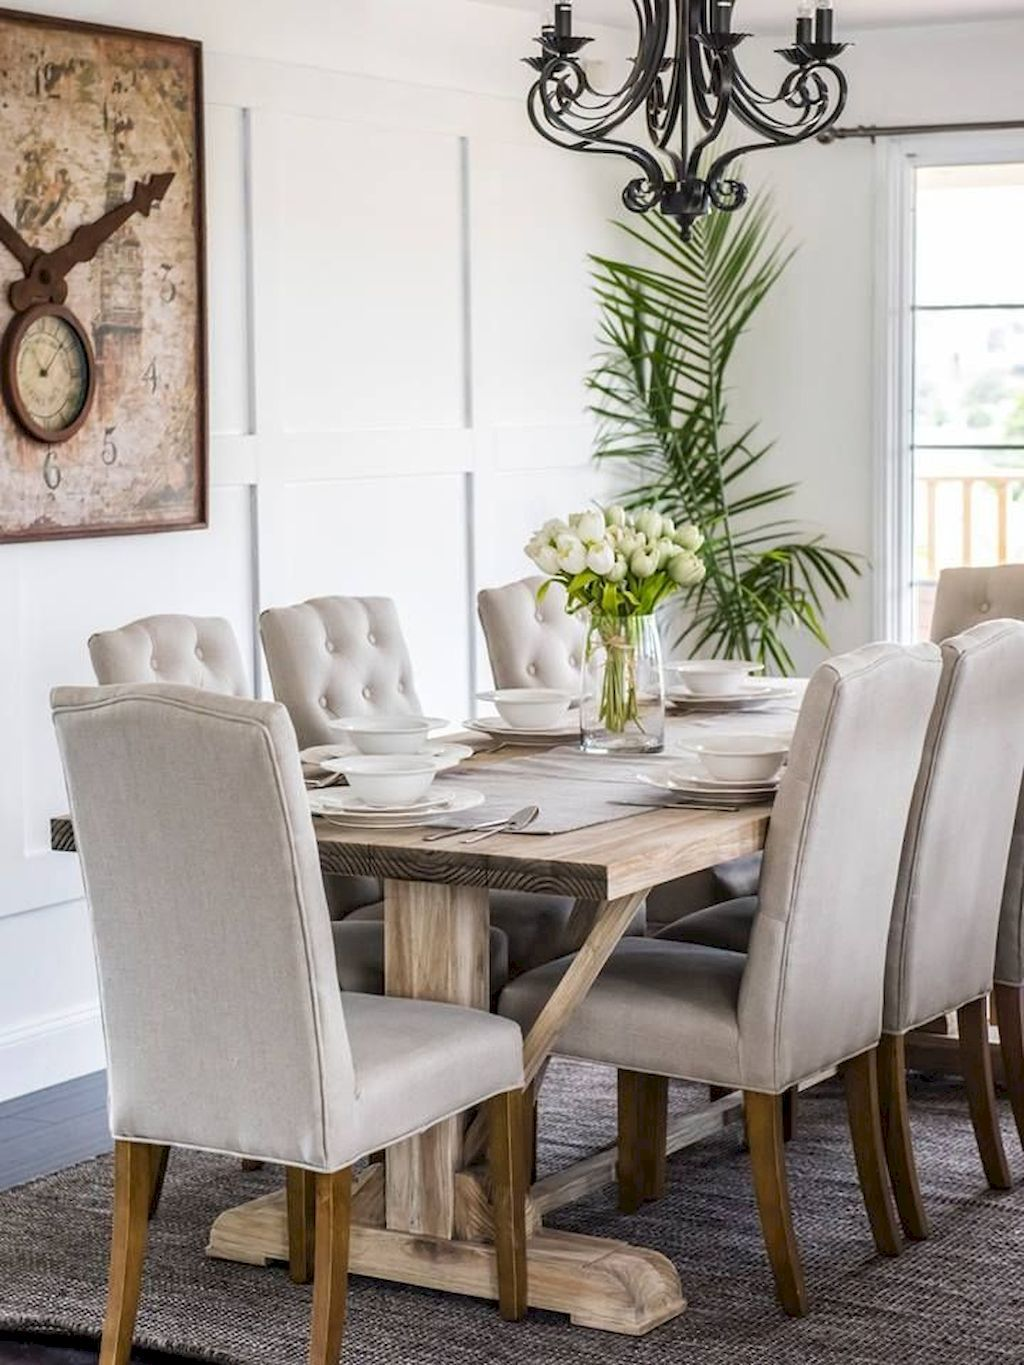 70 Cottage Dining Room Designs With Everlasting Style Elonahome Com Cottage Dining Rooms Home Decor Dining Room Decor